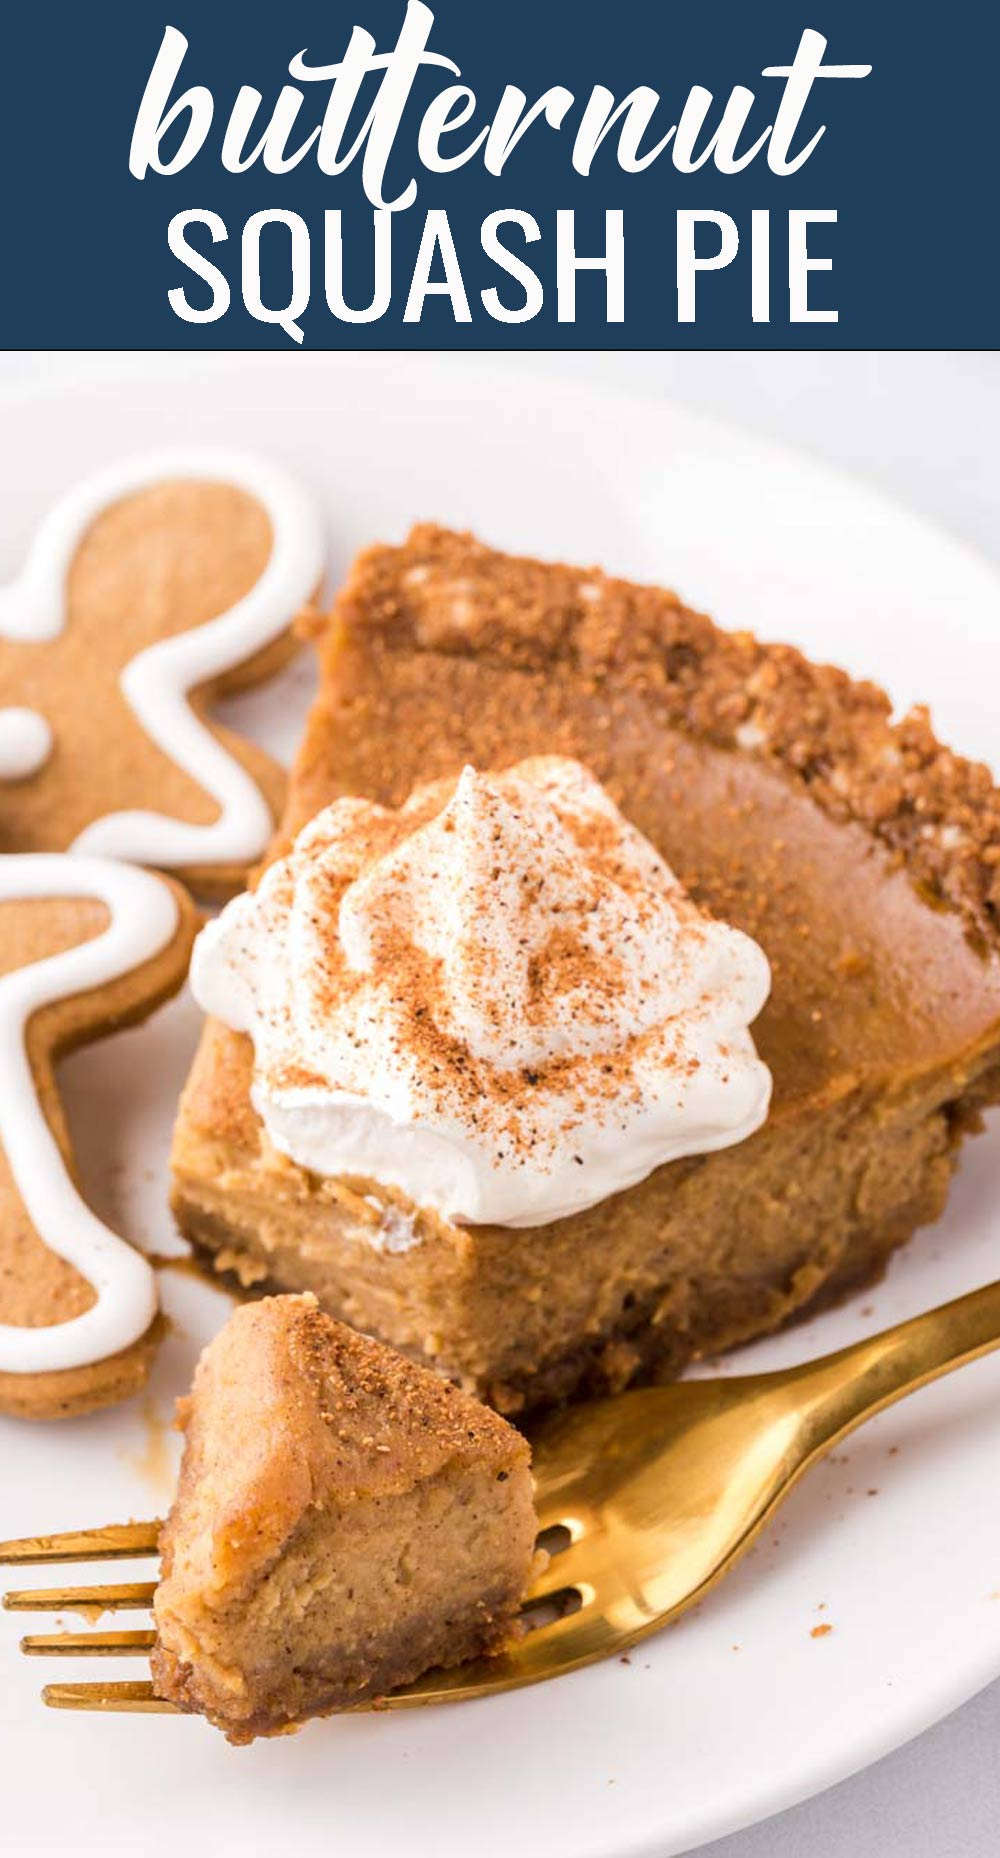 Switch up your holiday pies and try this lightly sweetened Butternut Squash Pie with a gingerbread cookie crust. An old recipe made new! via @tastesoflizzyt